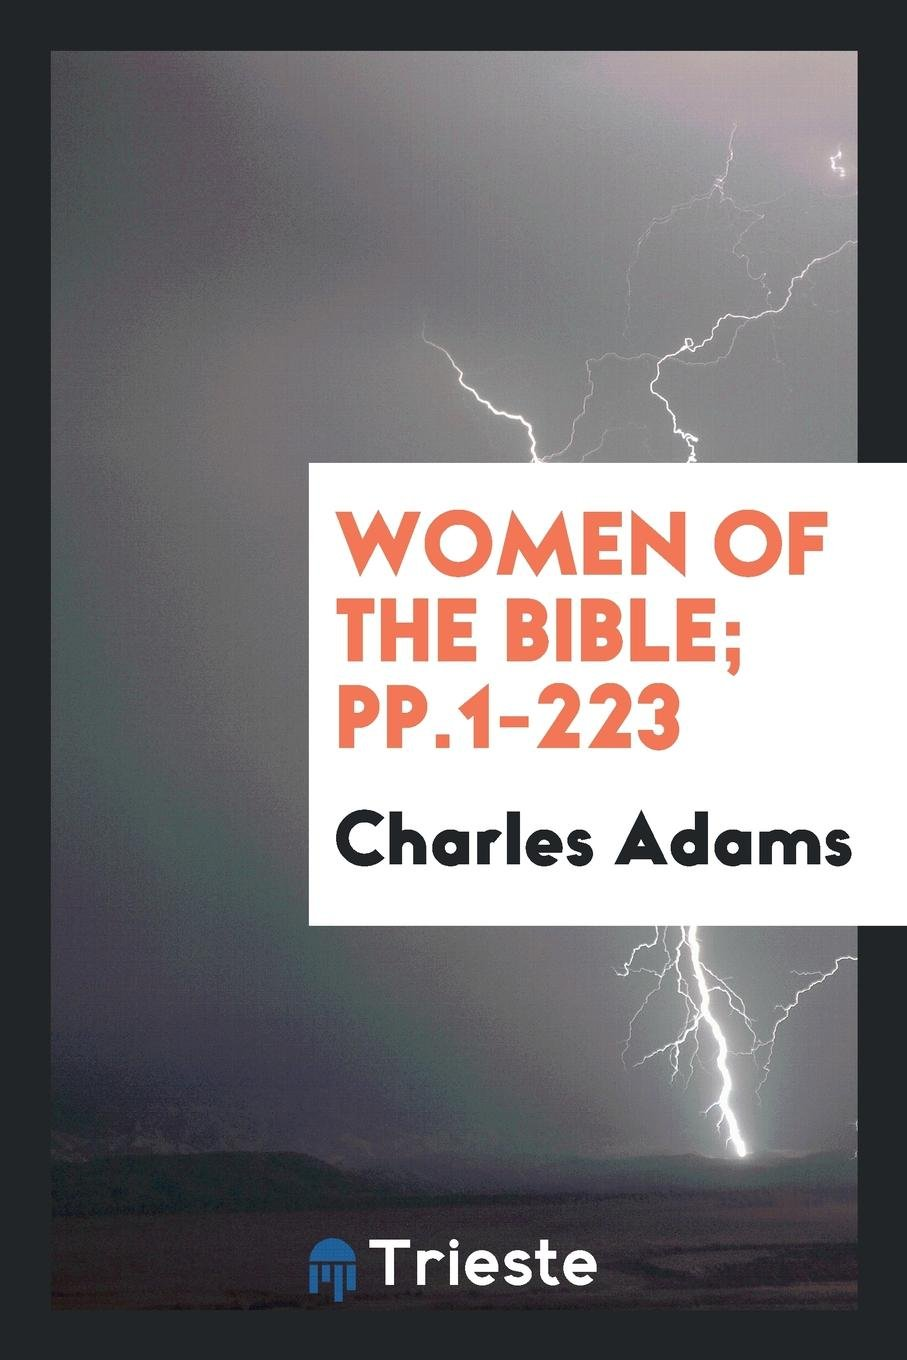 Women of the Bible: Charles Adams: 9780649735464: Amazon com: Books